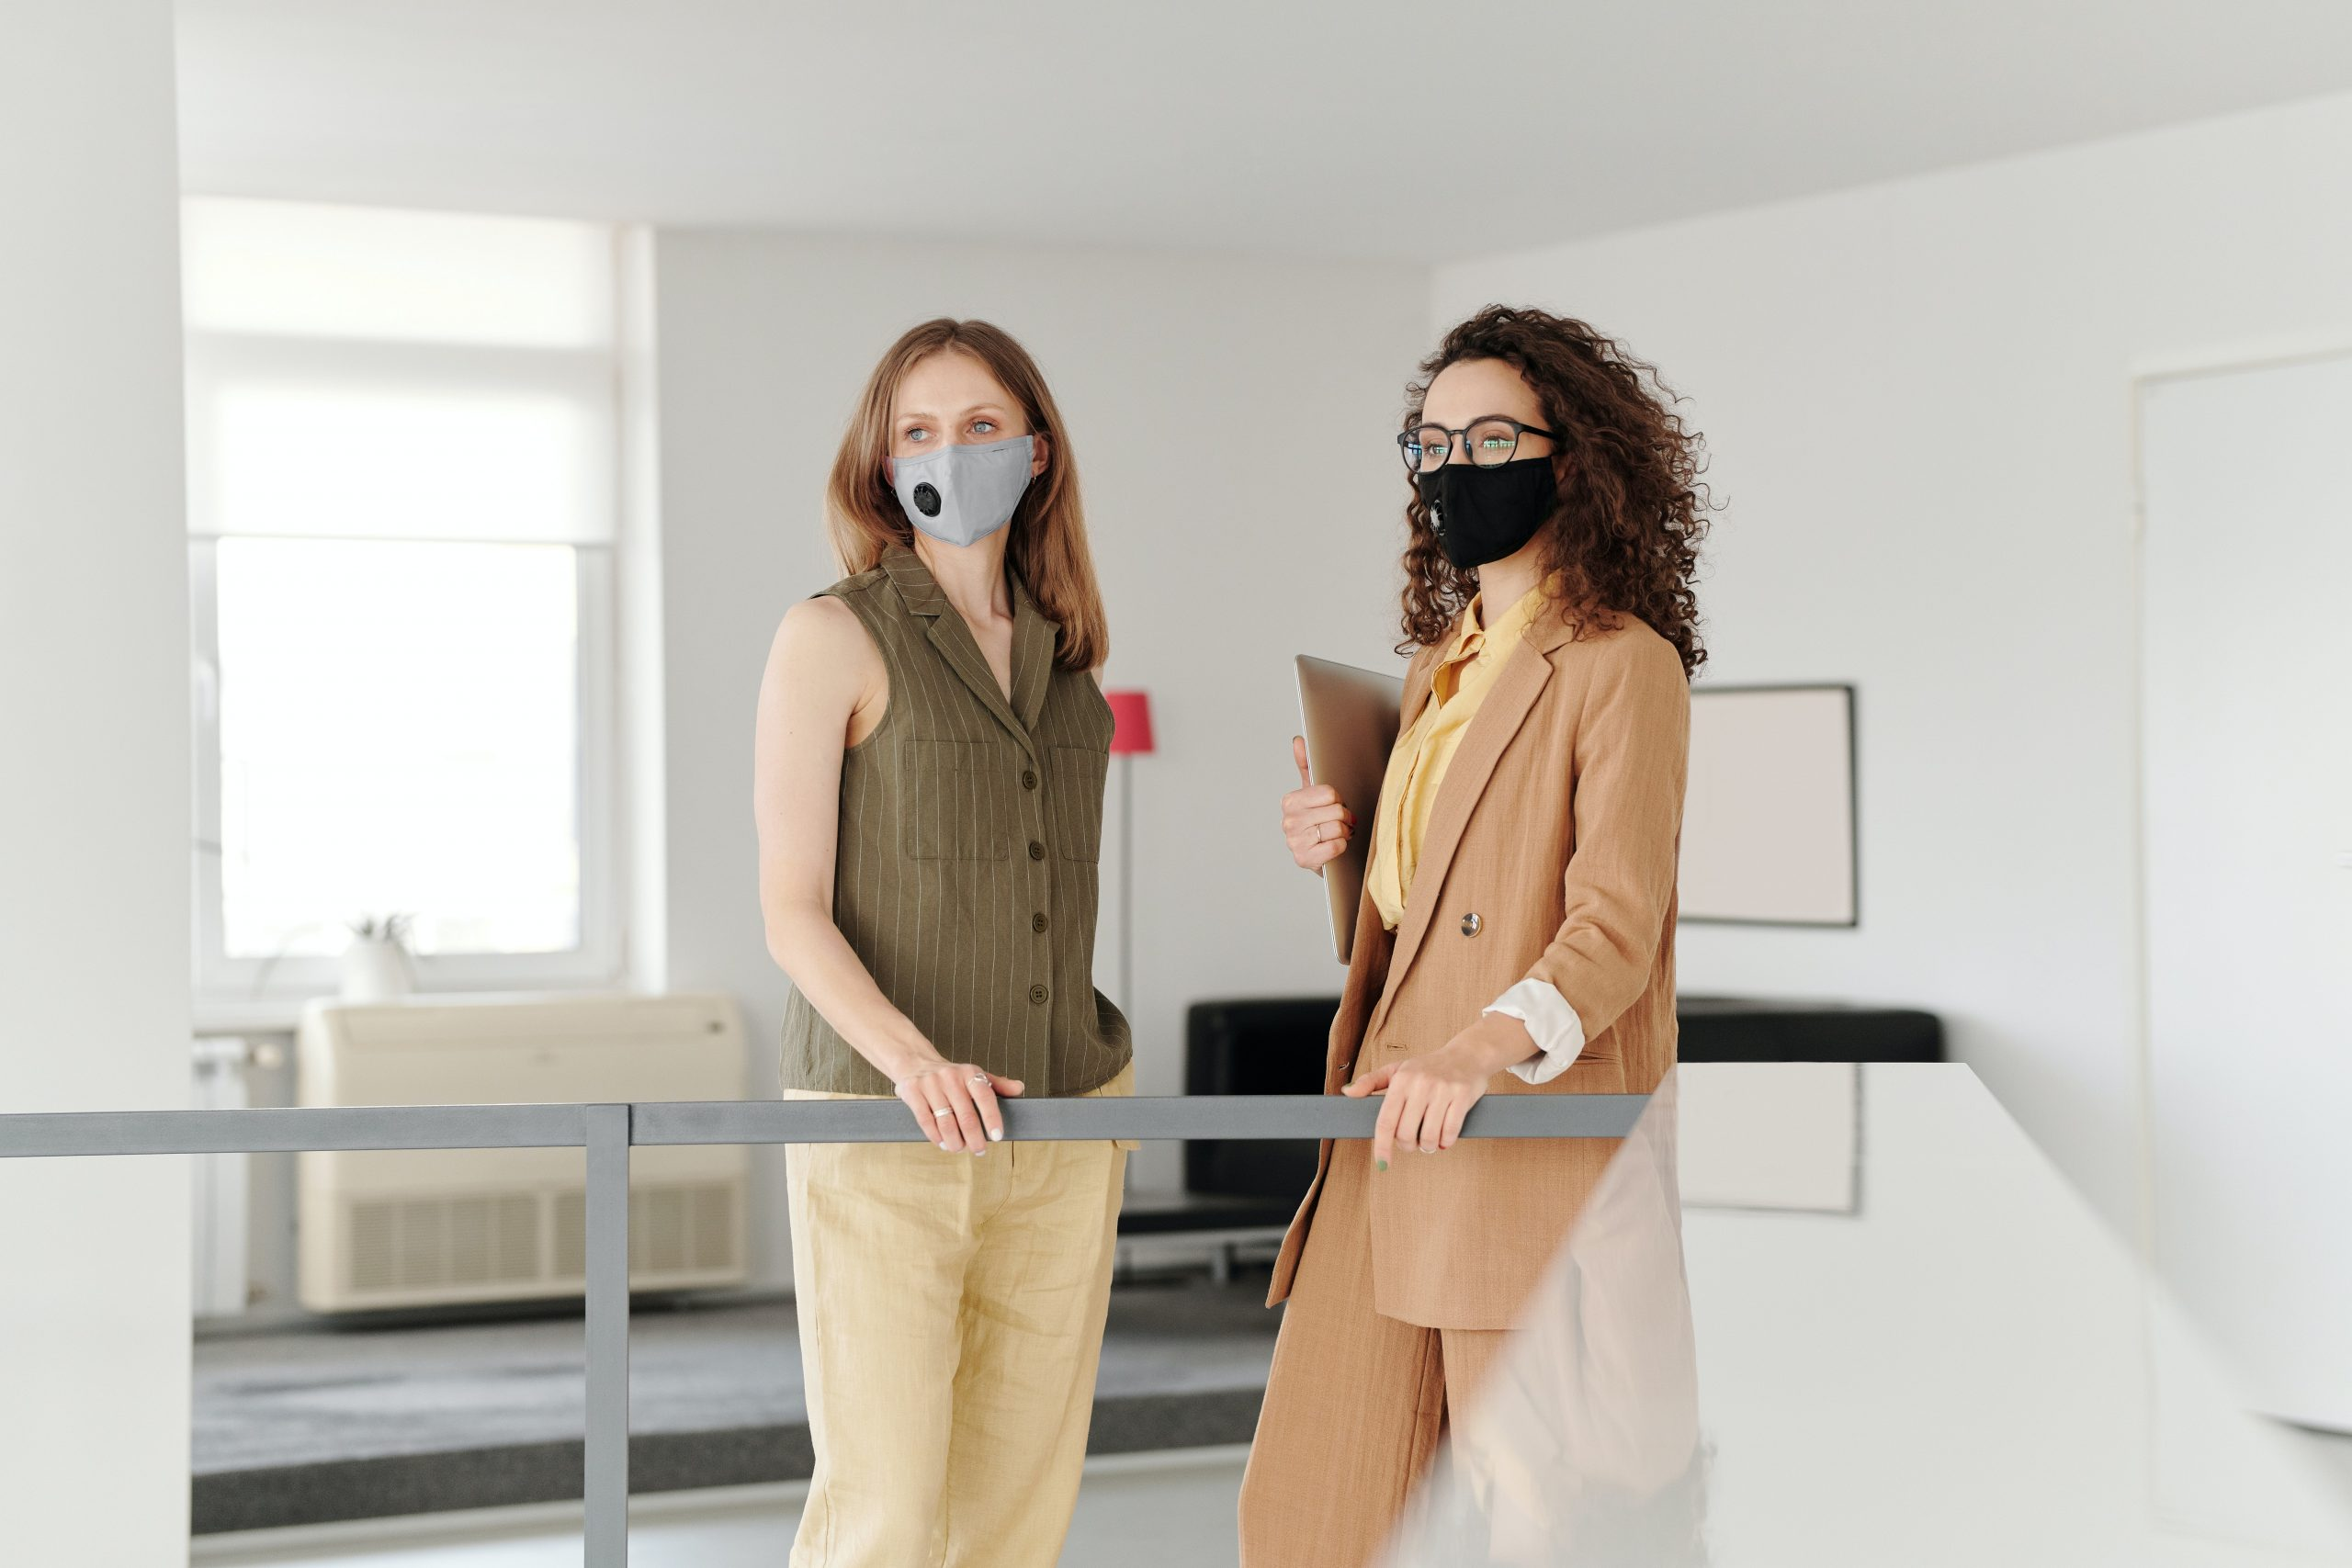 What Can We Expect From the Post-Pandemic Workplace?